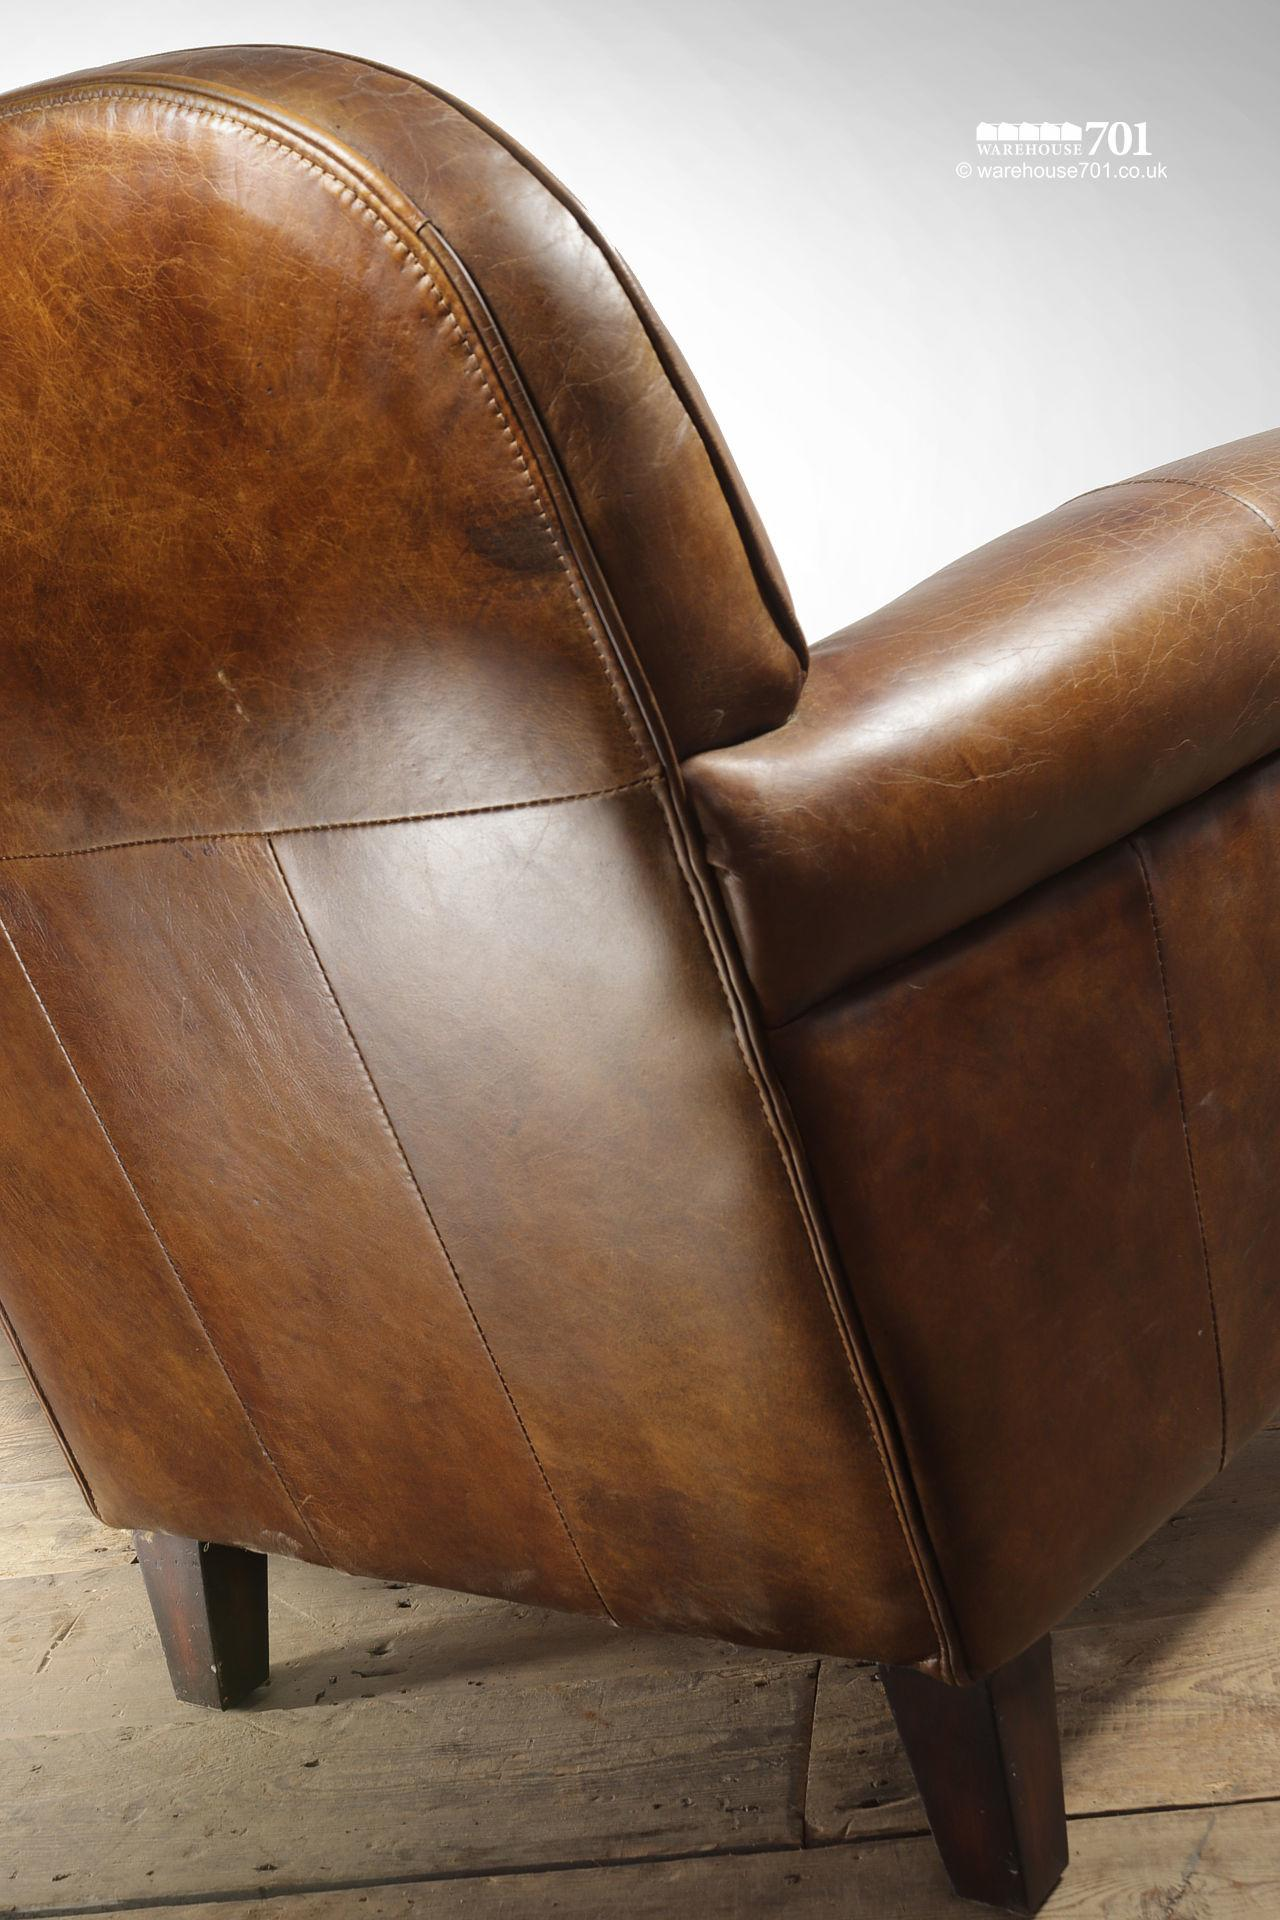 Beautifully Pre-Aged Tan Leather Armchair with Rounded Arms and Back #7